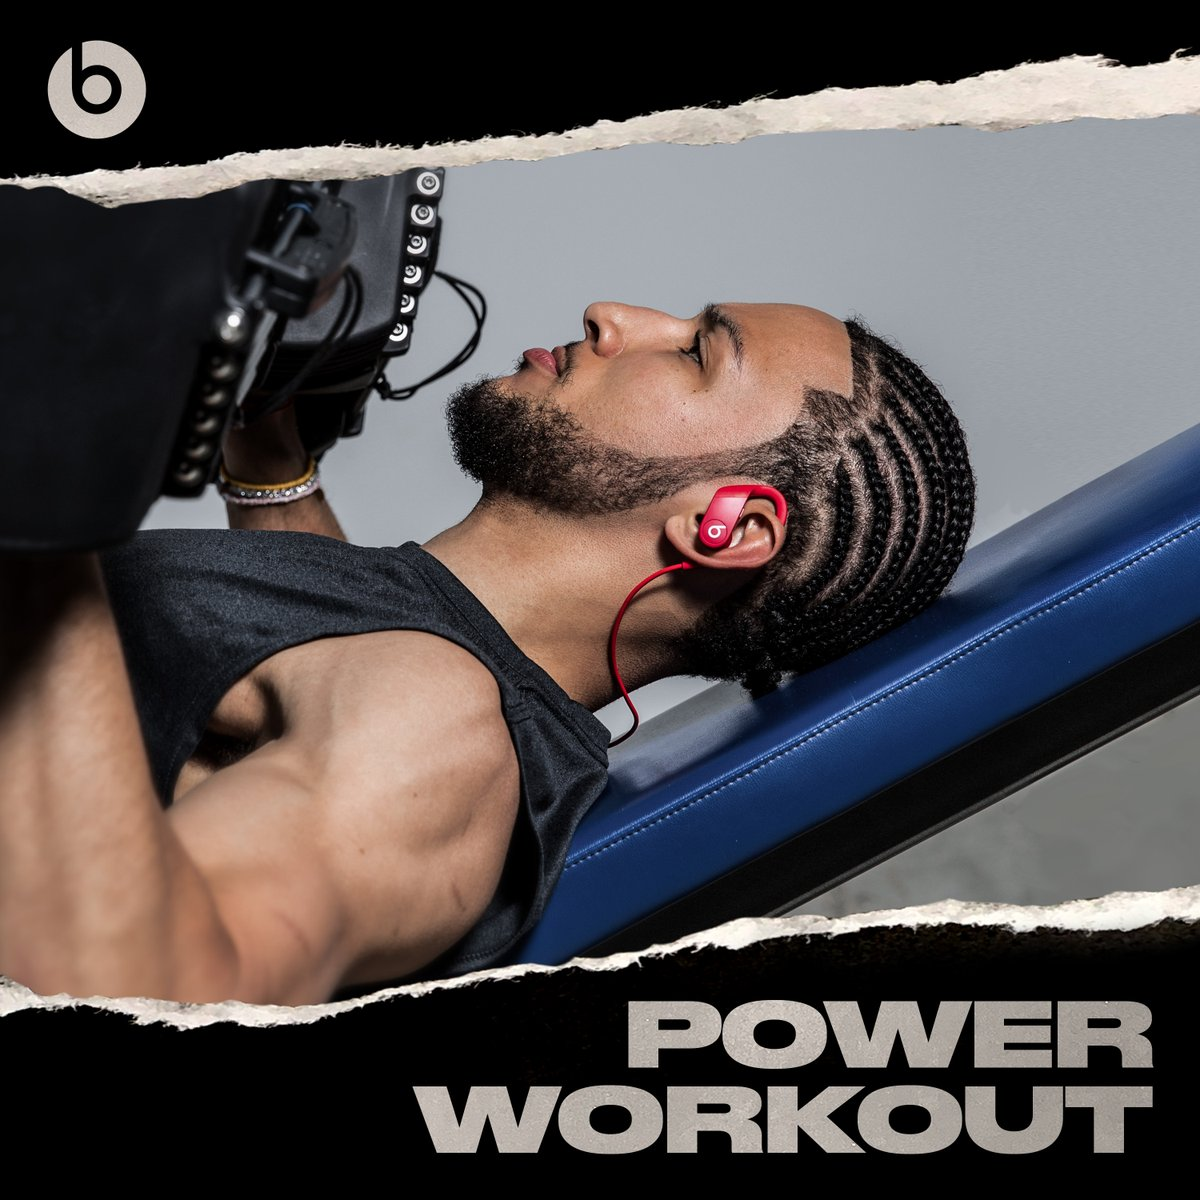 Stay active. Stay inspired. #PowerRunsInTheFamily// Hit the link to listen to NBA All-Star @bensimmons25's workout playlist on @applemusic: https://t.co/ePmEx2S9f6 https://t.co/XafMcP51Gm